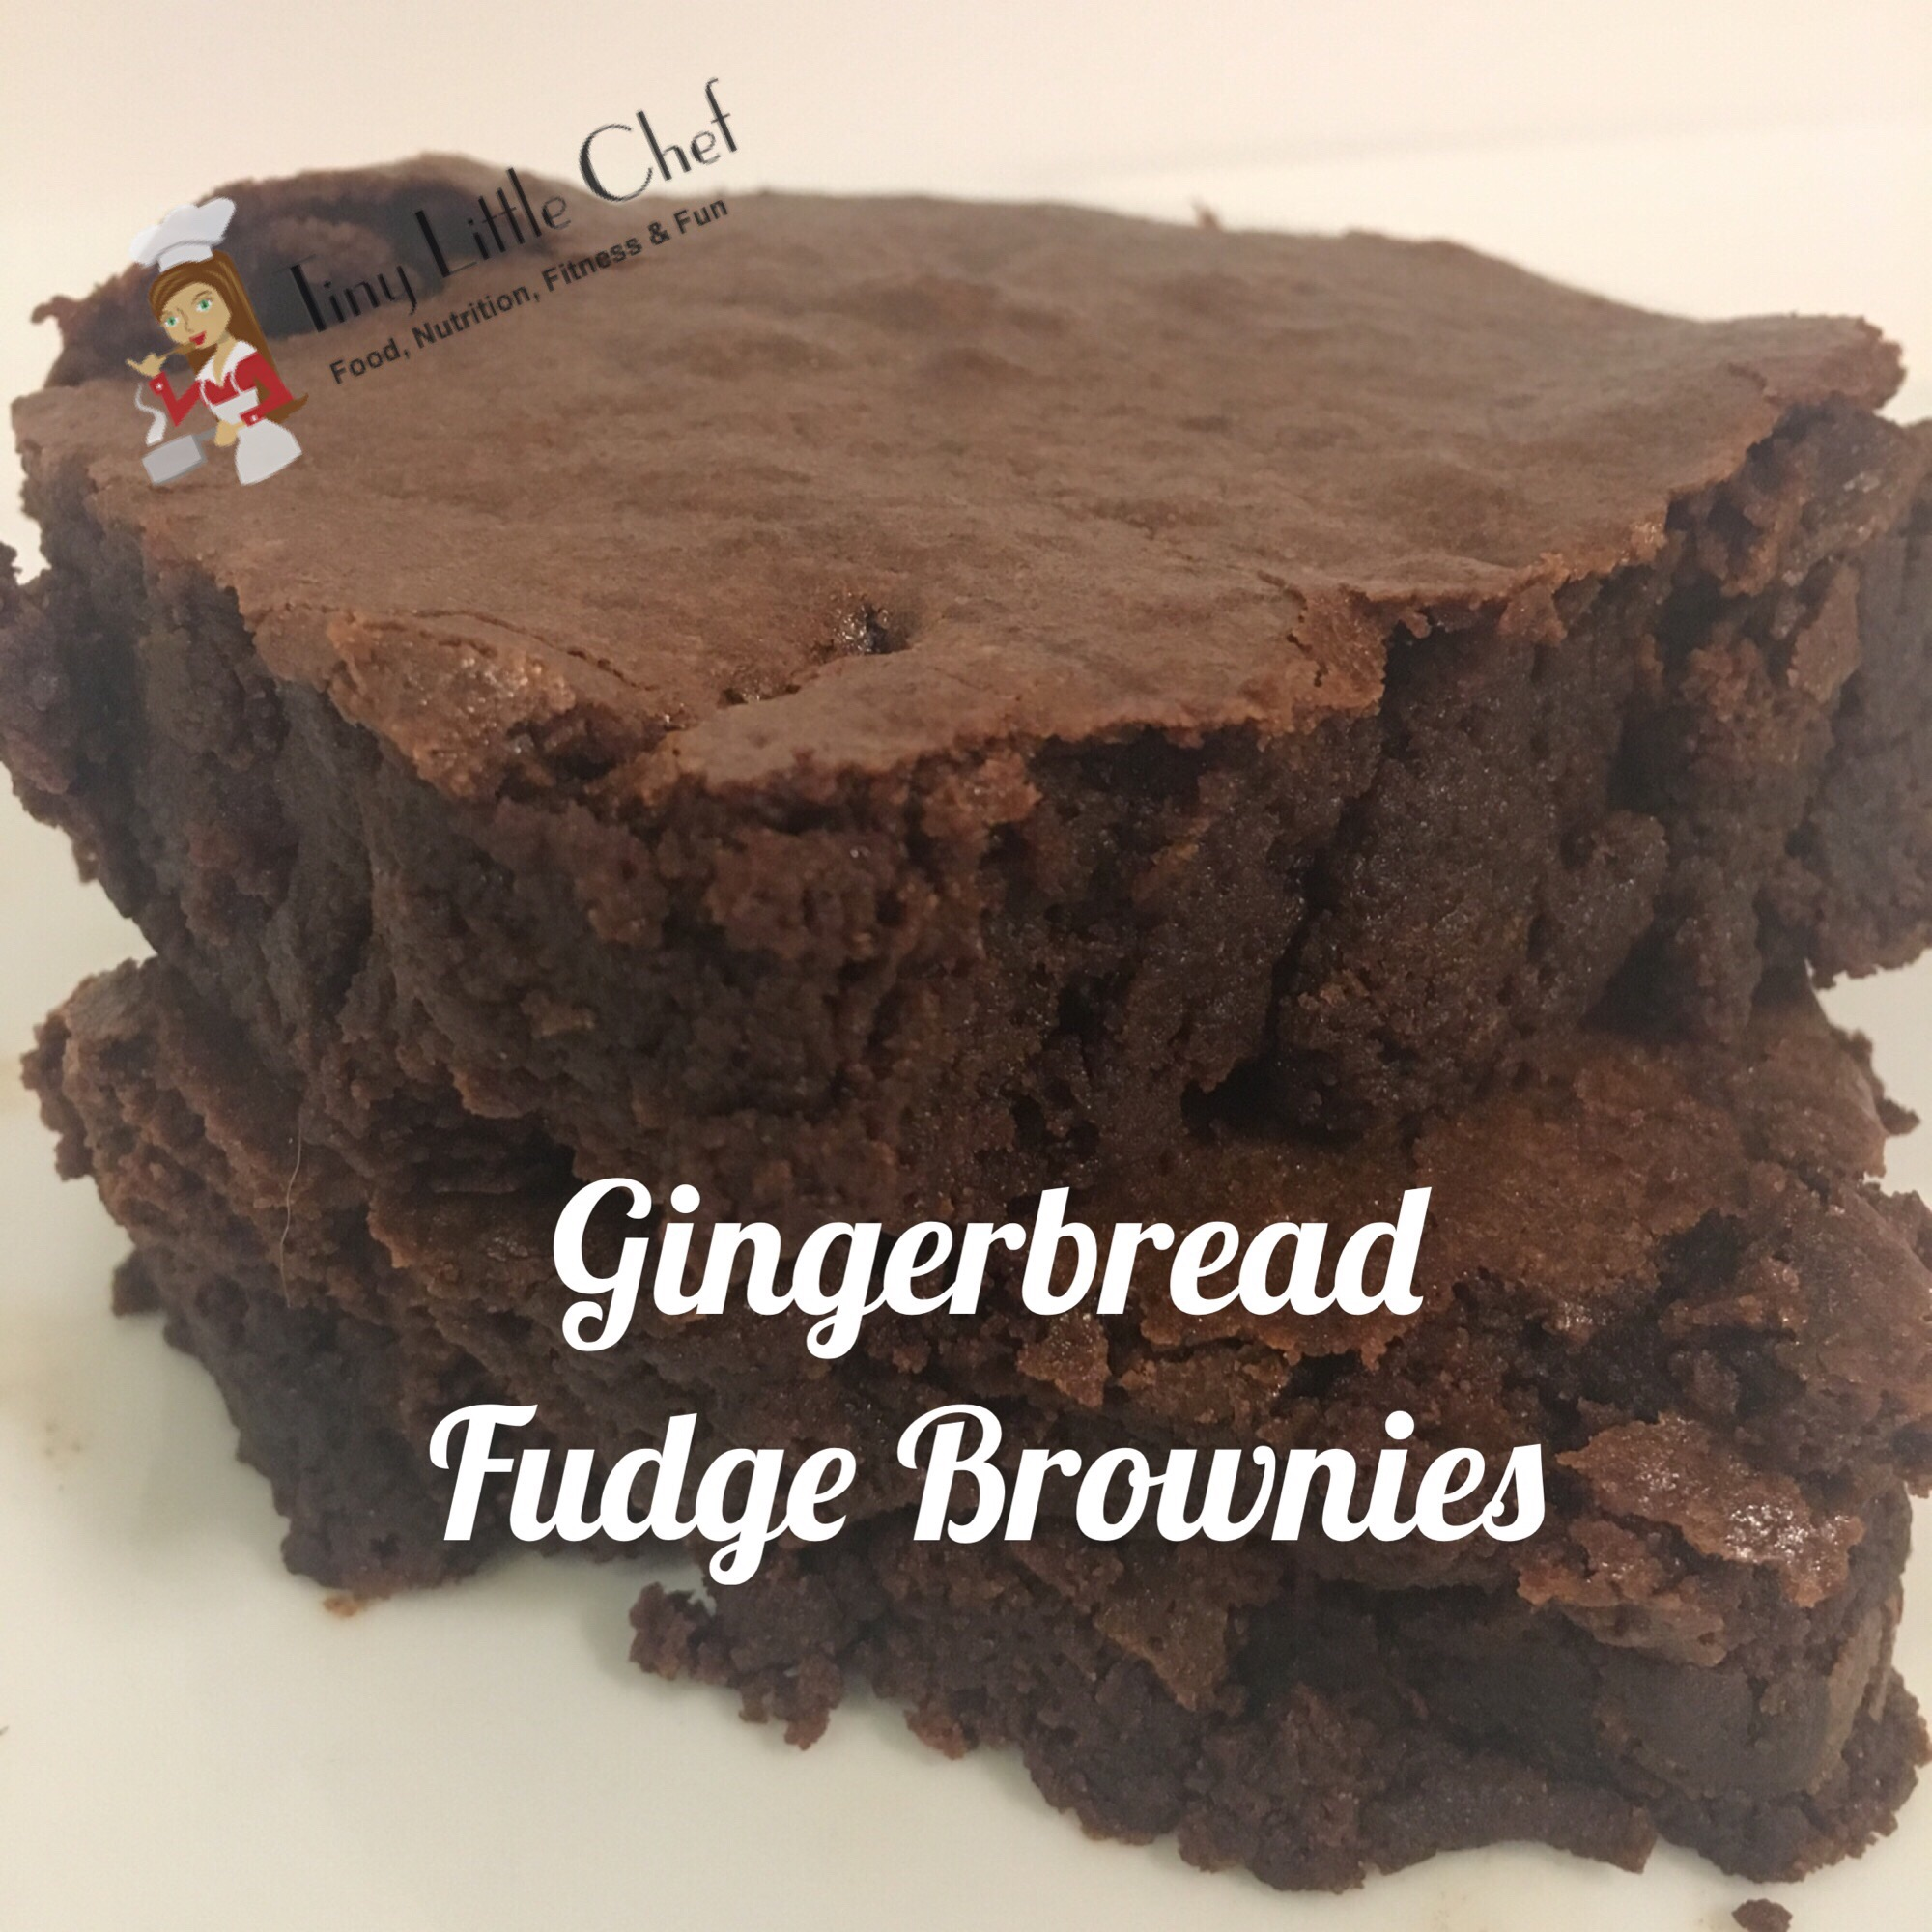 Tiny Little Chef Gingerbread Fudge Brownies